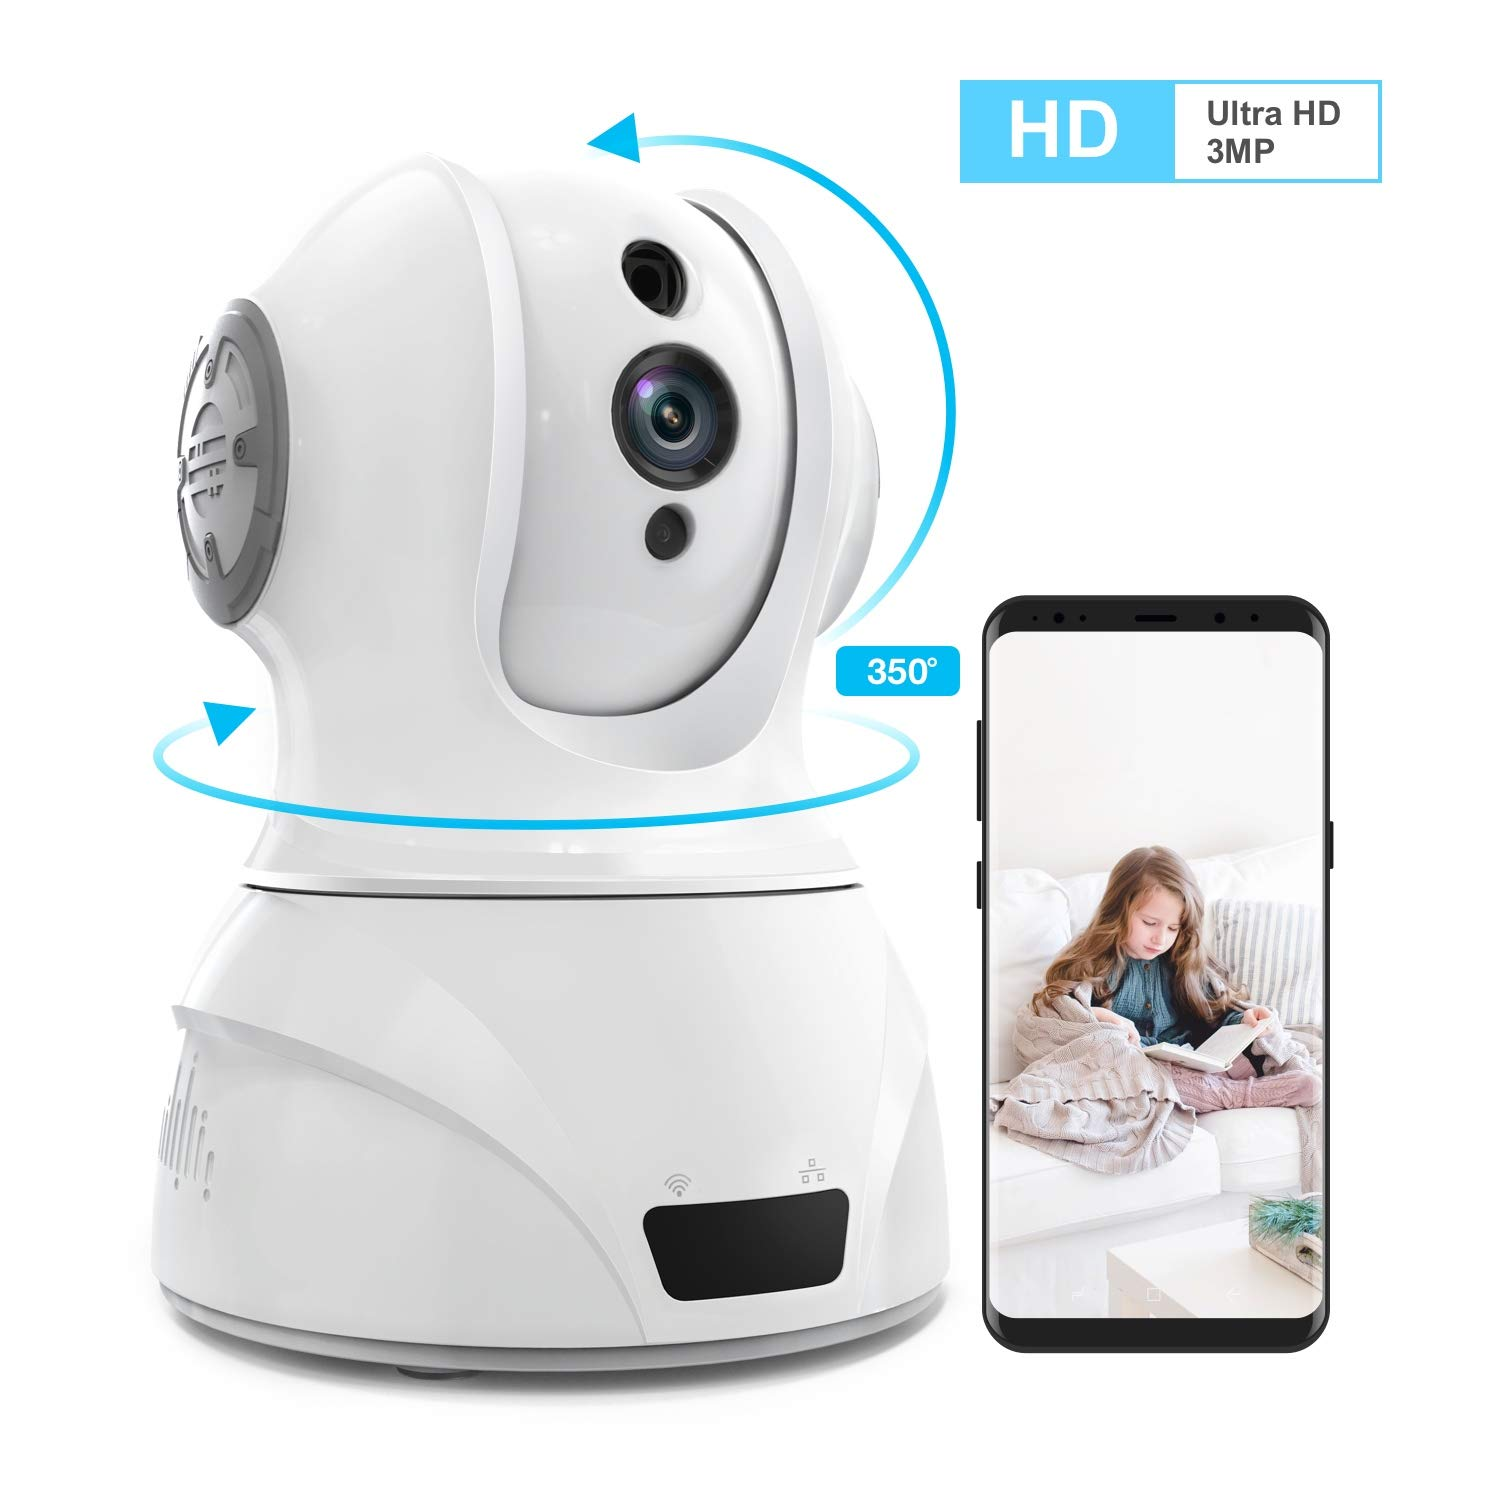 Home Security Camera Wi-Fi IP Camera, Wonbo Wireless HD 3MP Pan Tilt Zoom 2.4G with 2-Way Audio, Motion Detection, Night Vision, Remote Monitor for Baby Pet Elder, Supports ALEXA Android iOS – White